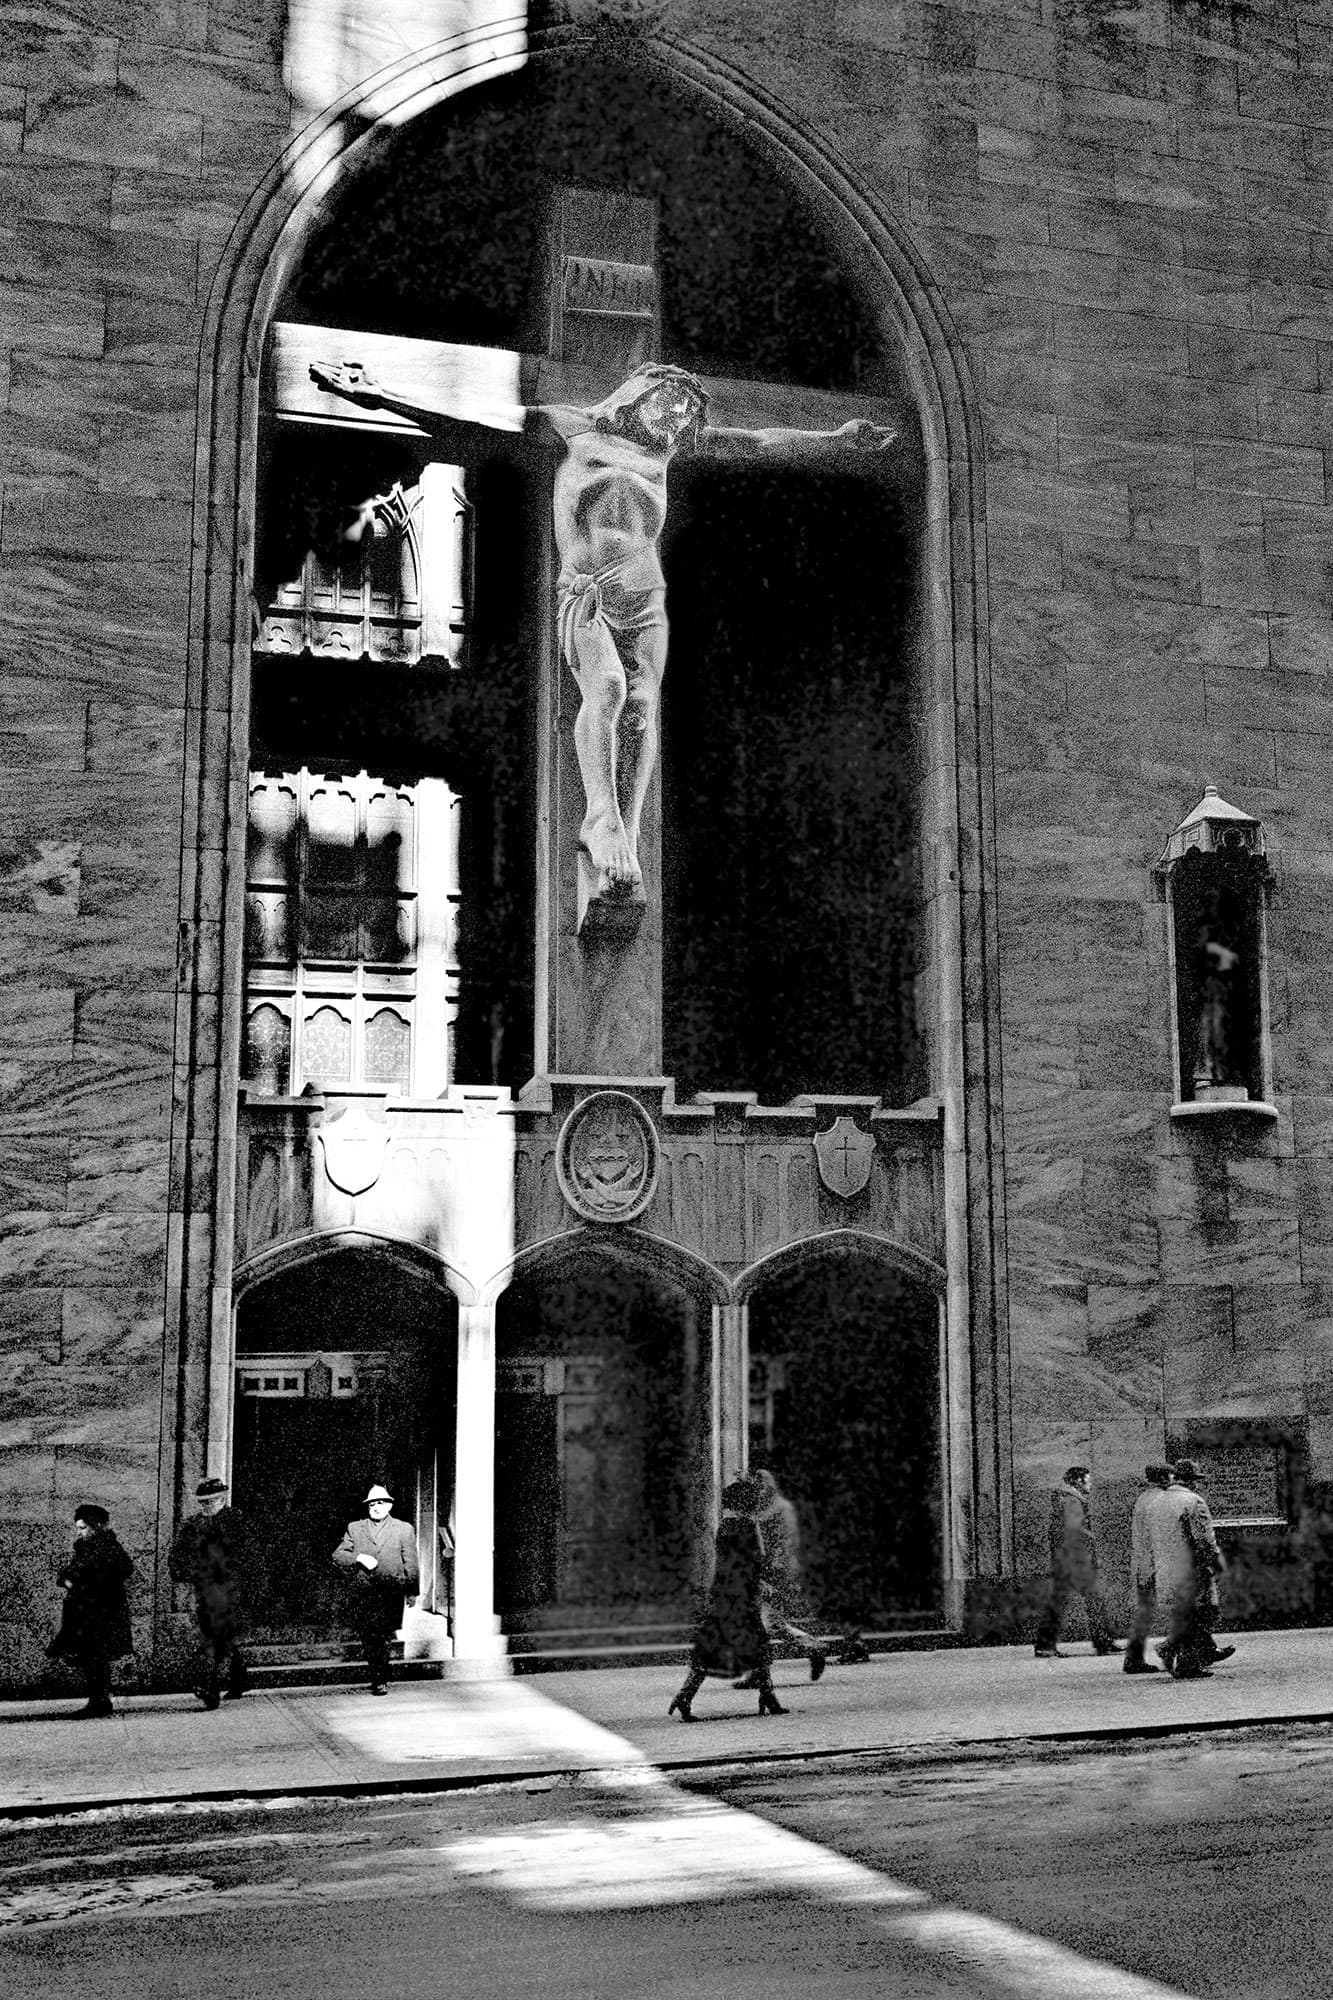 arthur-lazar-St.-Peters-Church-1977